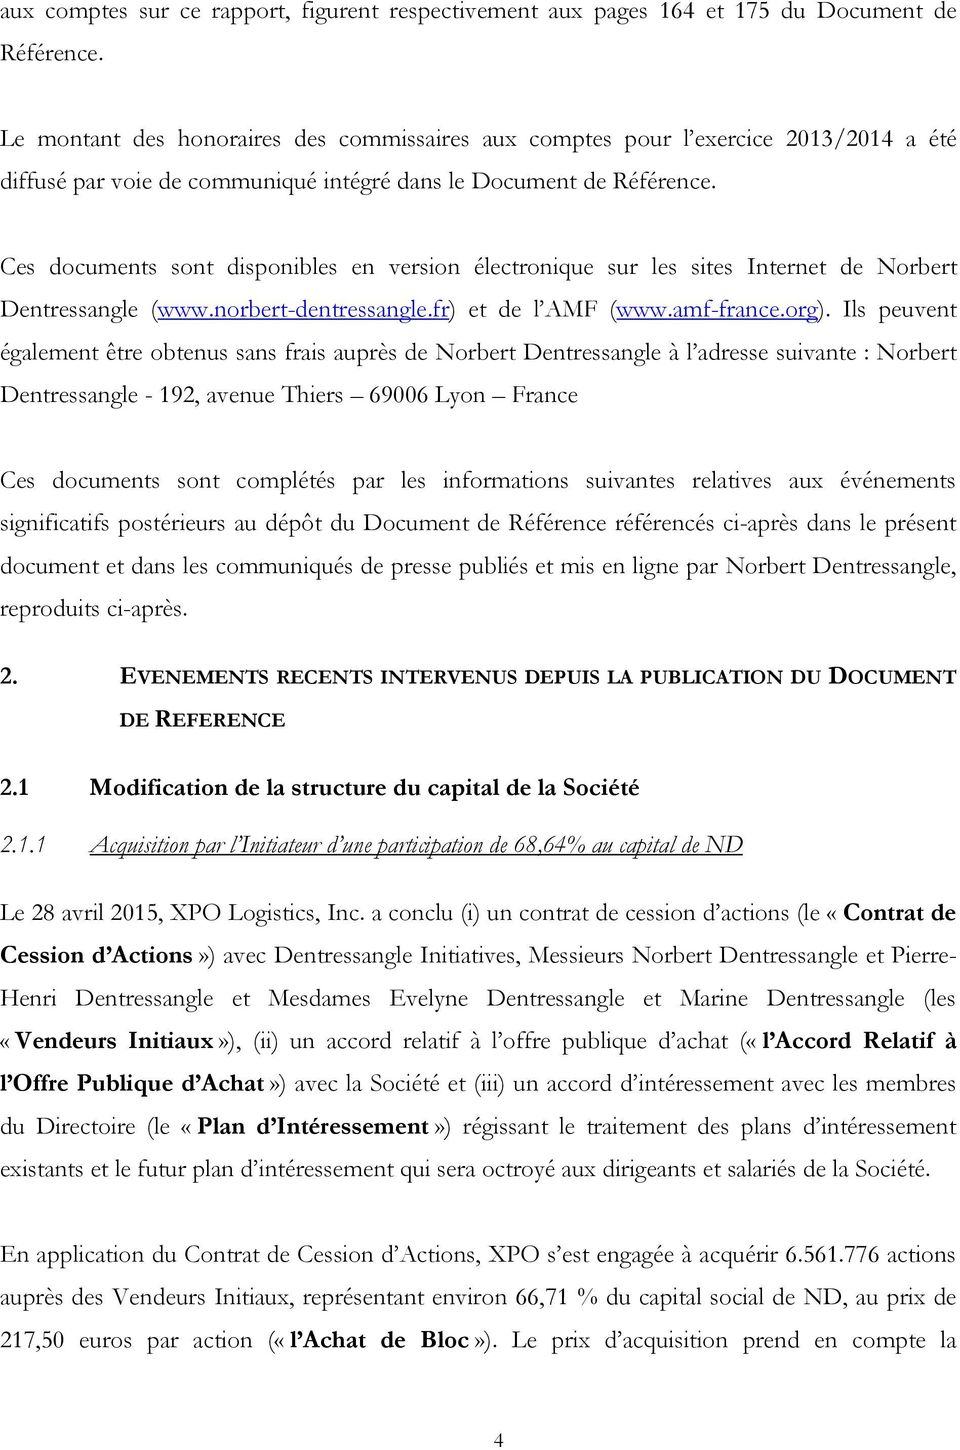 Ces documents sont disponibles en version électronique sur les sites Internet de Norbert Dentressangle (www.norbert-dentressangle.fr) et de l AMF (www.amf-france.org).